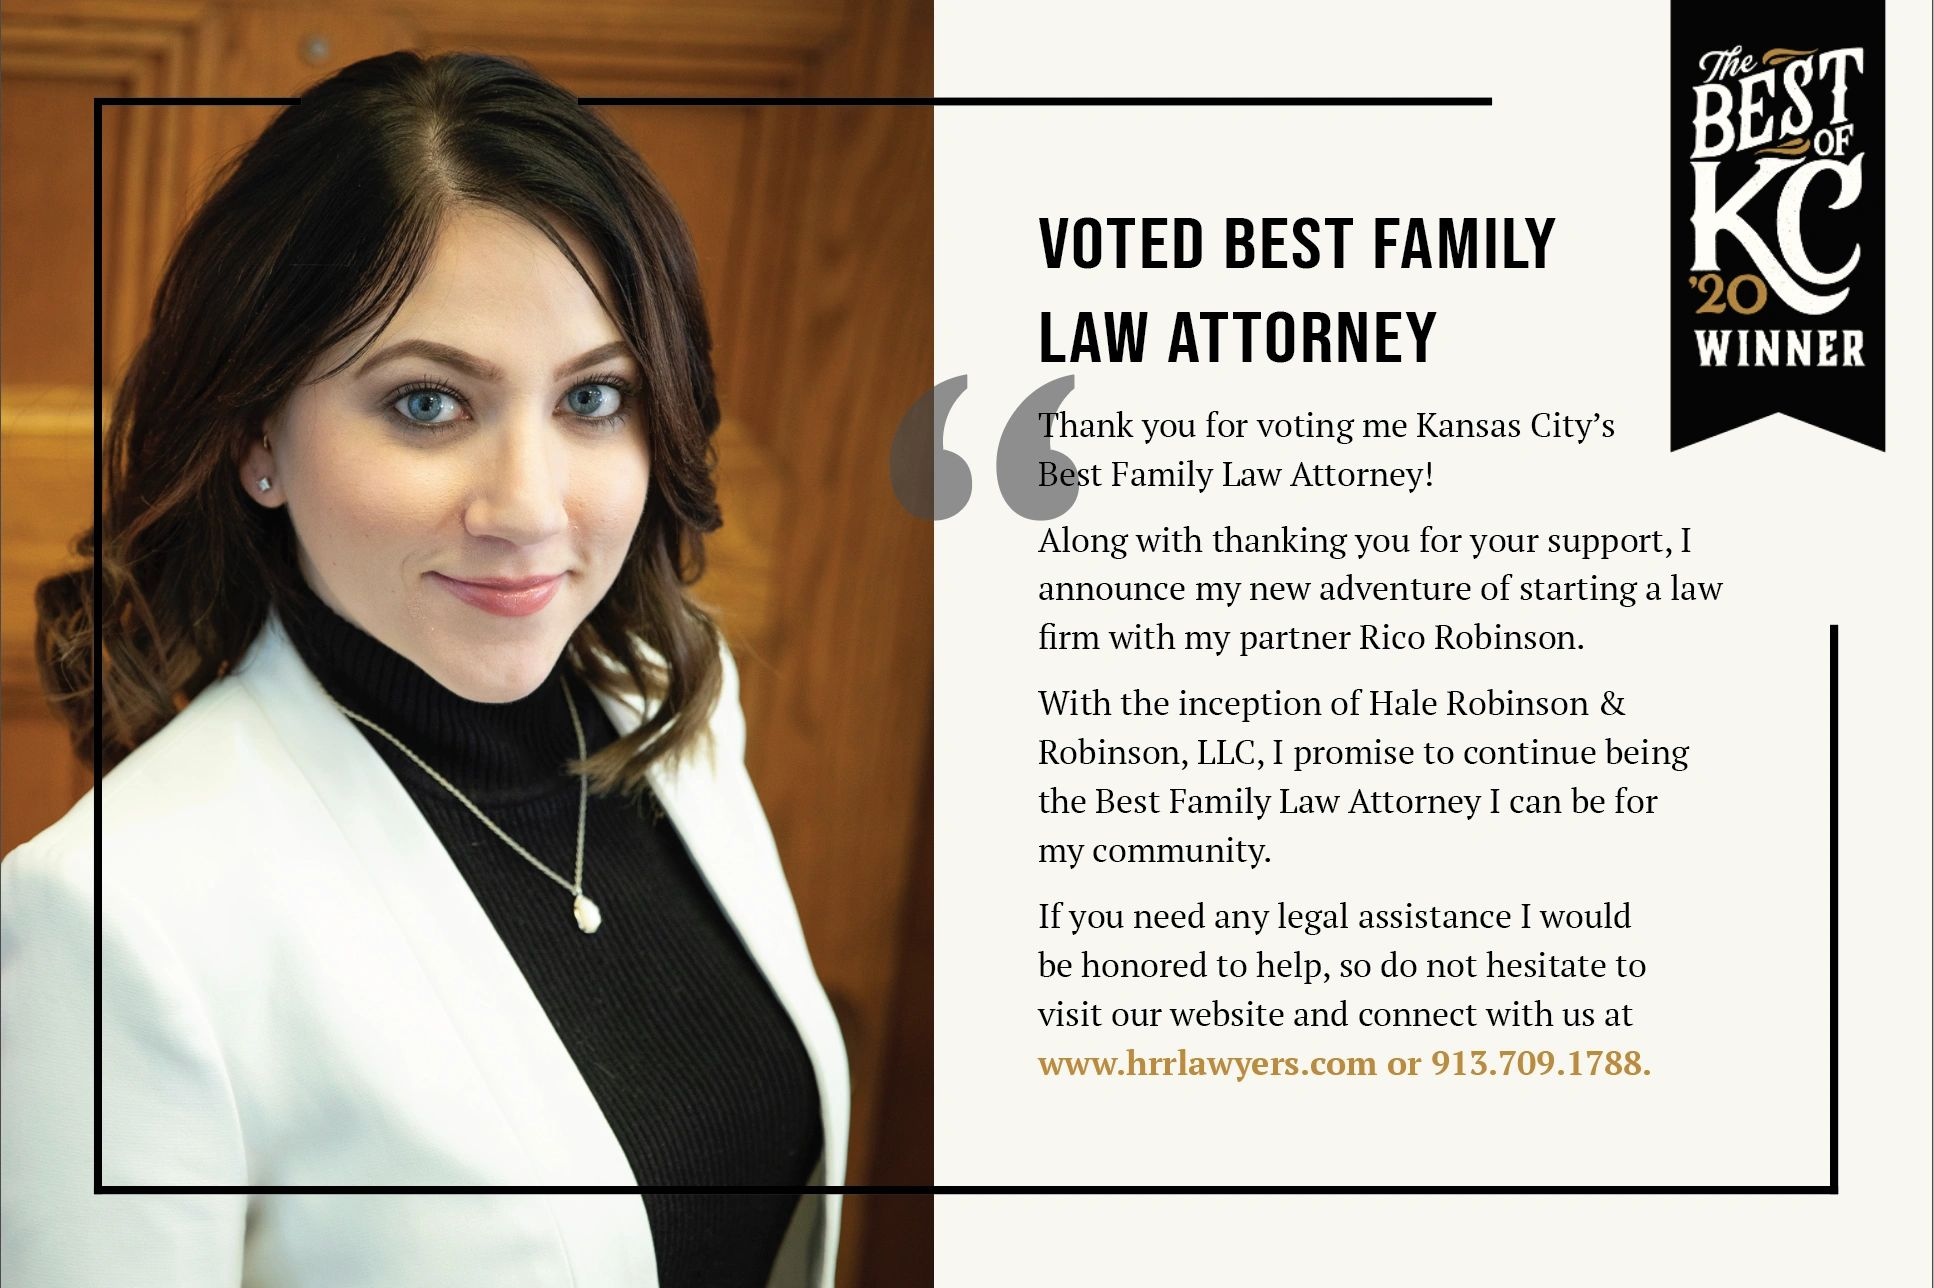 Suzanne Voted Best Family Law Attorney 2020 Kansas City's Best Family Law Lawyer